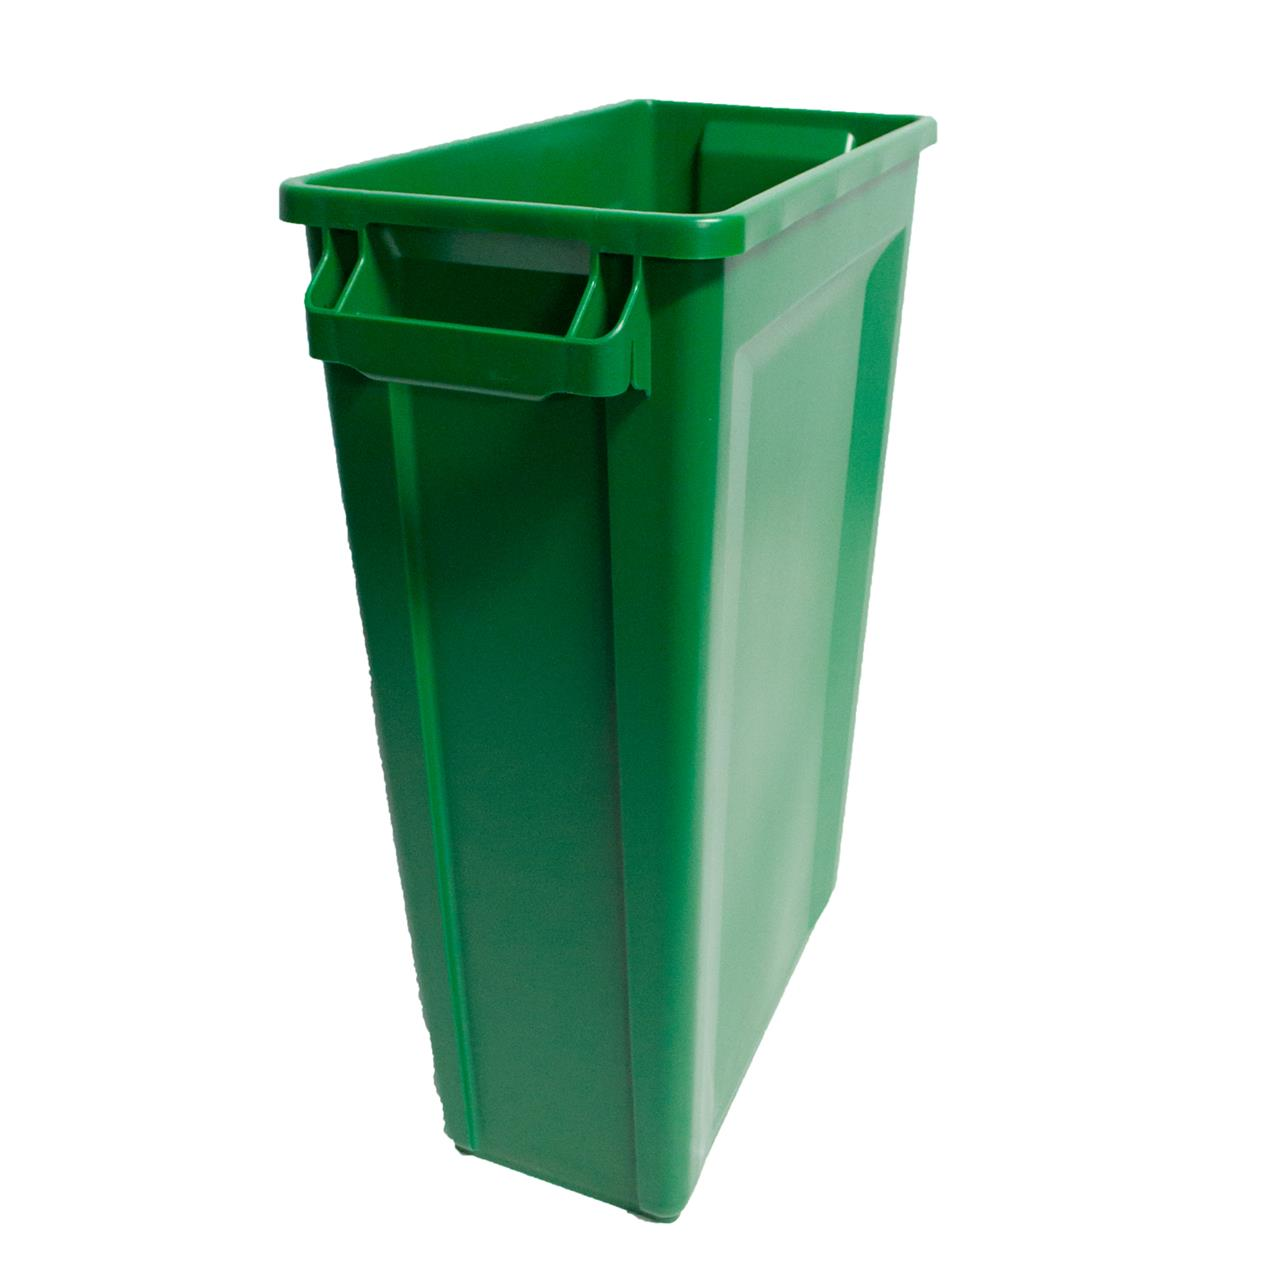 TRUST Commercial Slim Bin Green